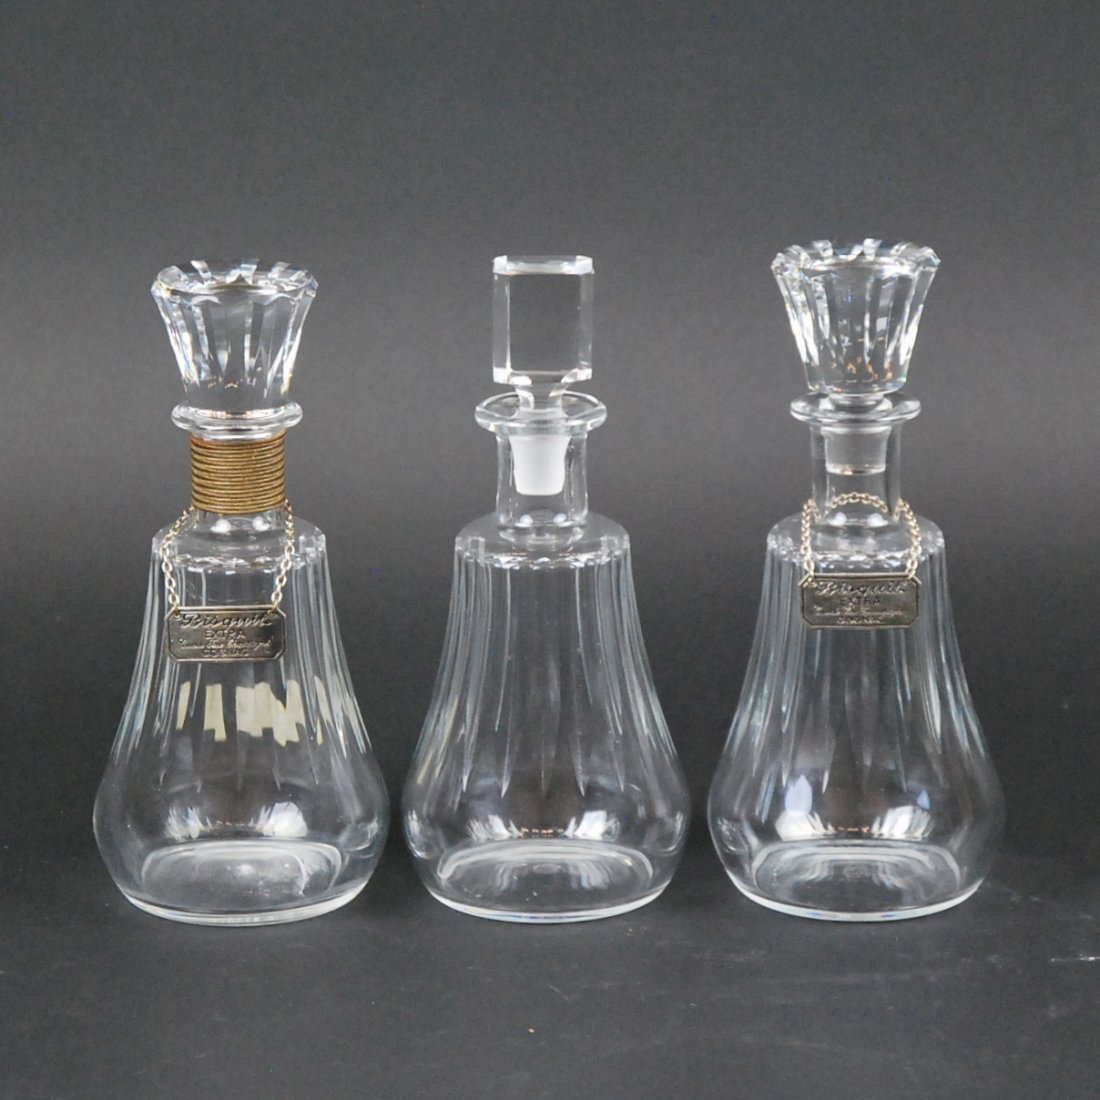 THREE BACCARAT GLASS DECANTERS WITH STOPPERS